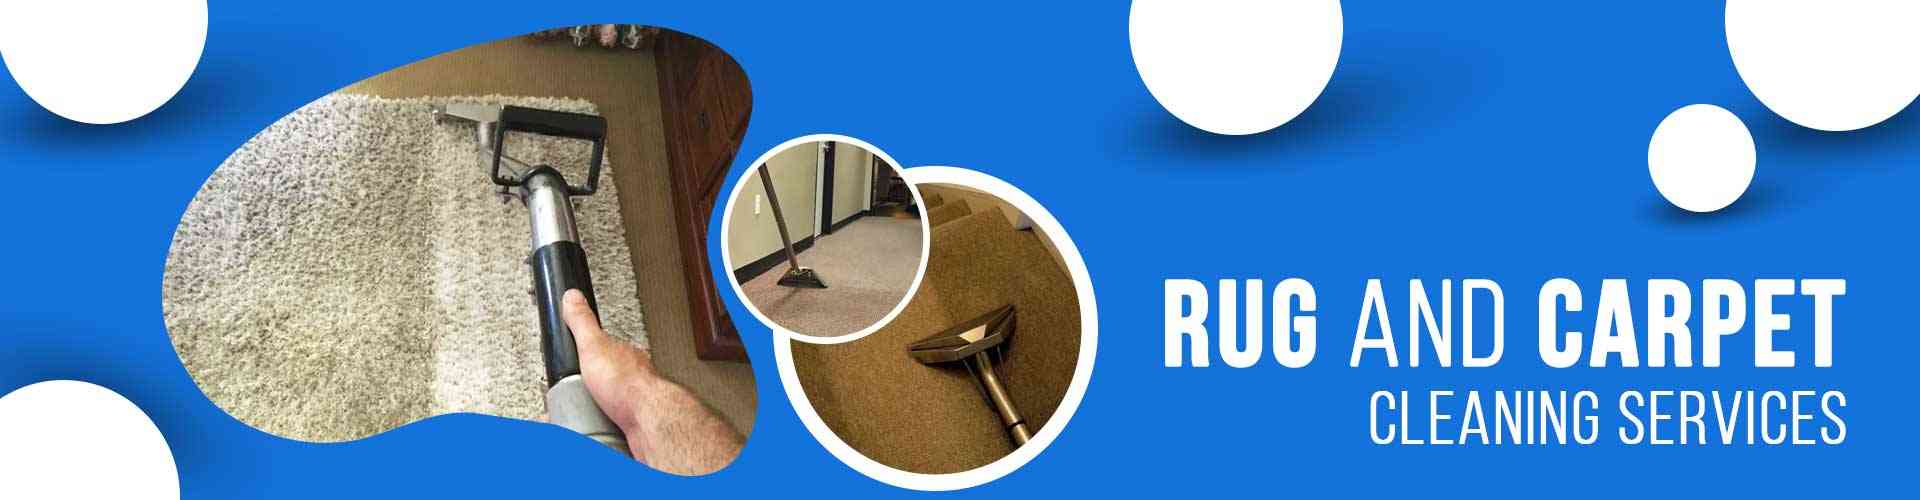 Steam Cleaning Your Carpet The Right Way